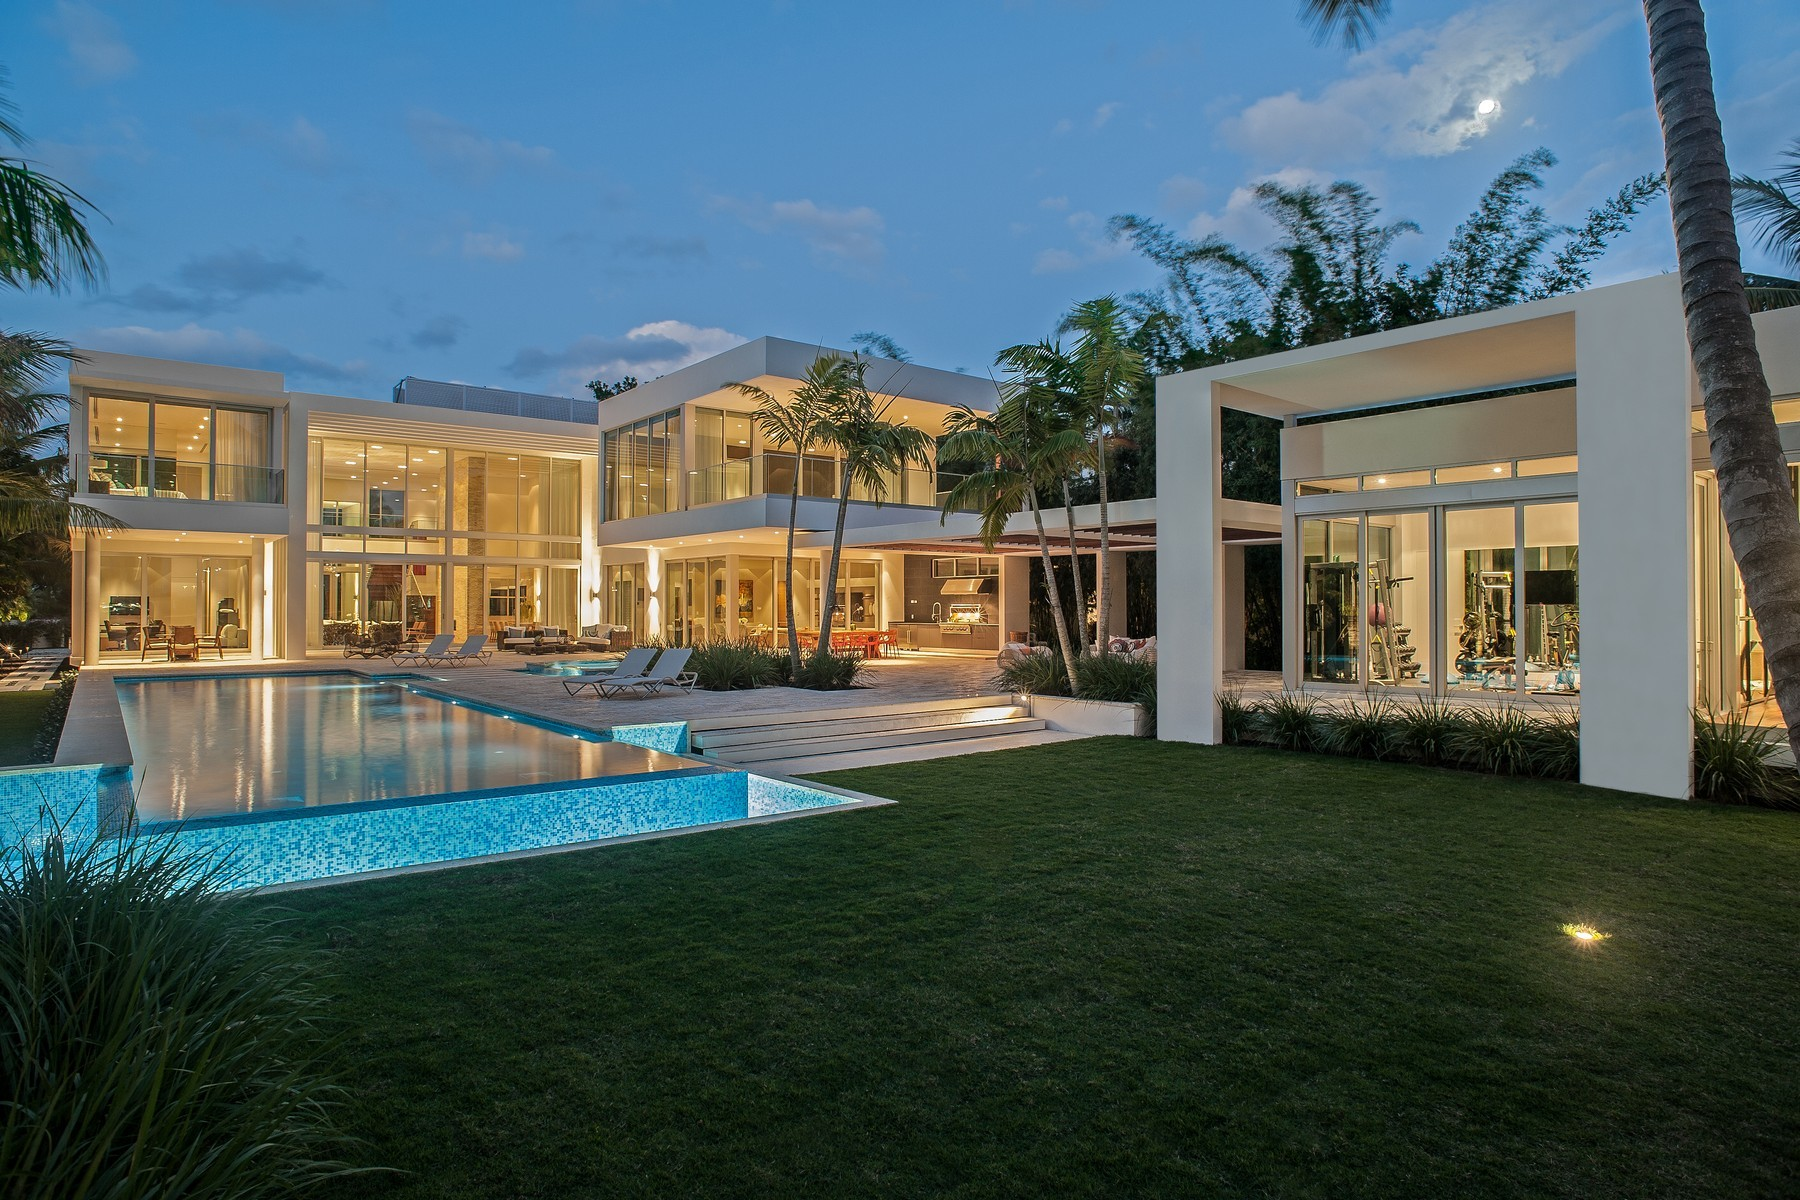 Breathtaking 8 bedroom 32 million miami mansion for sale